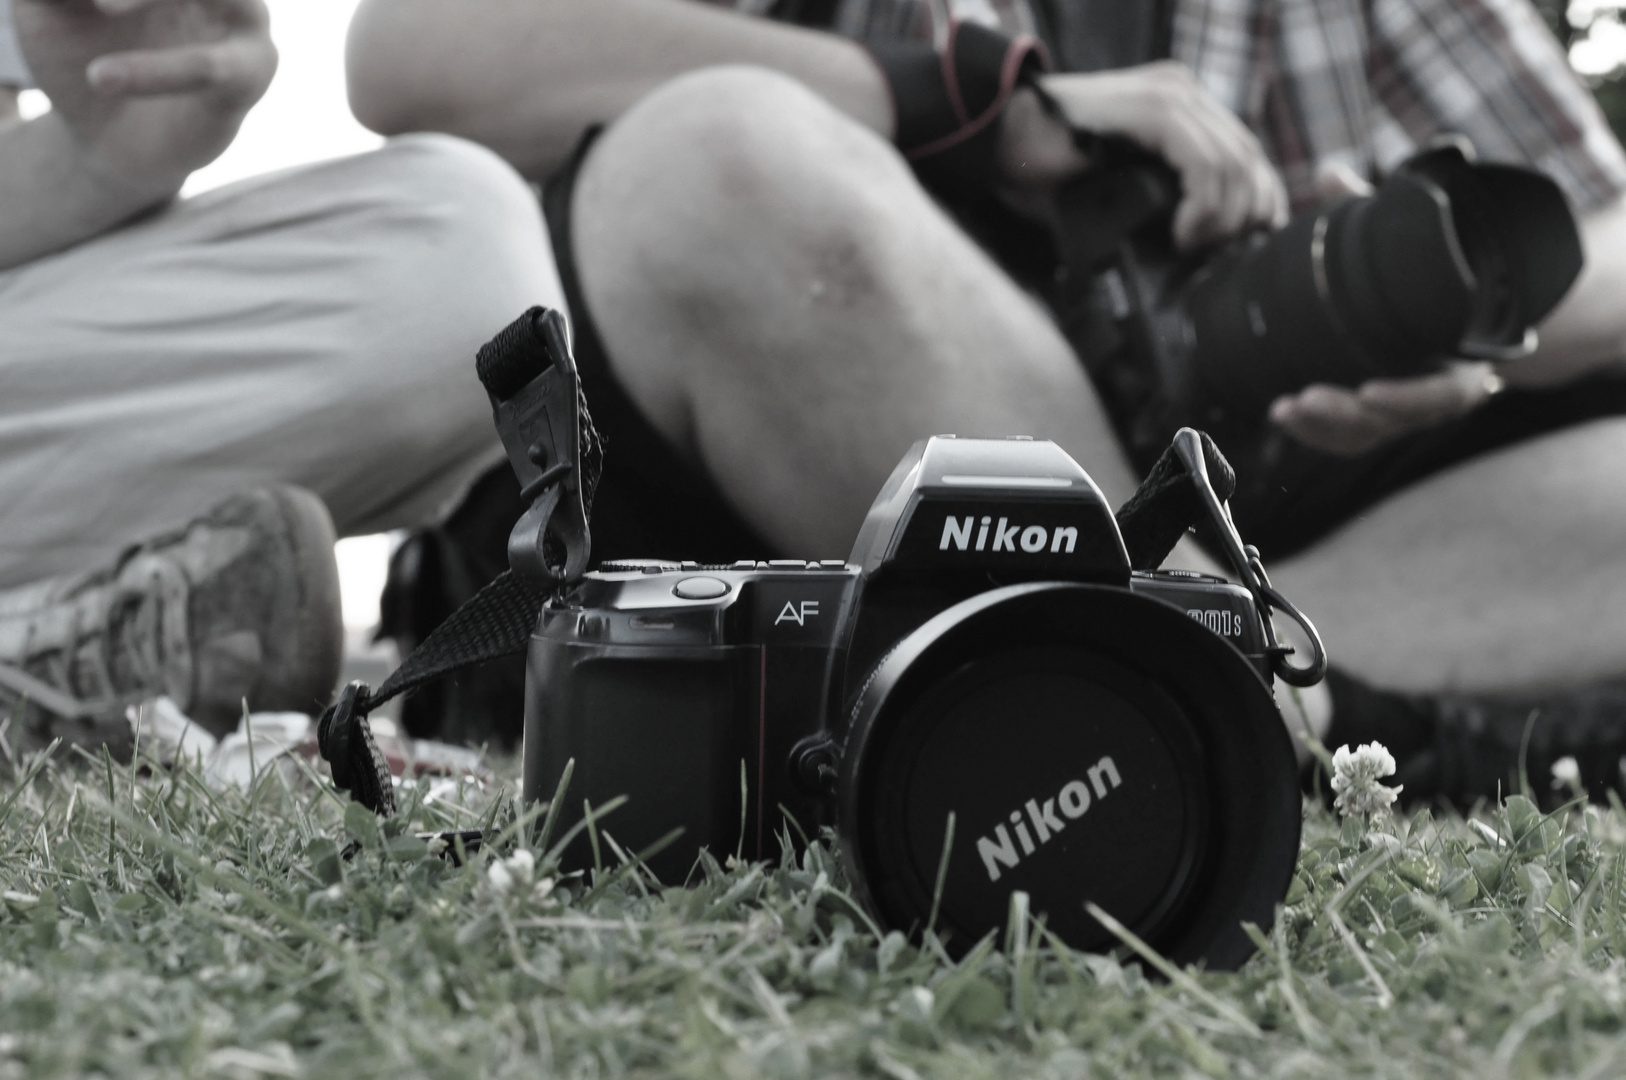 A Day with the Fotocrew!